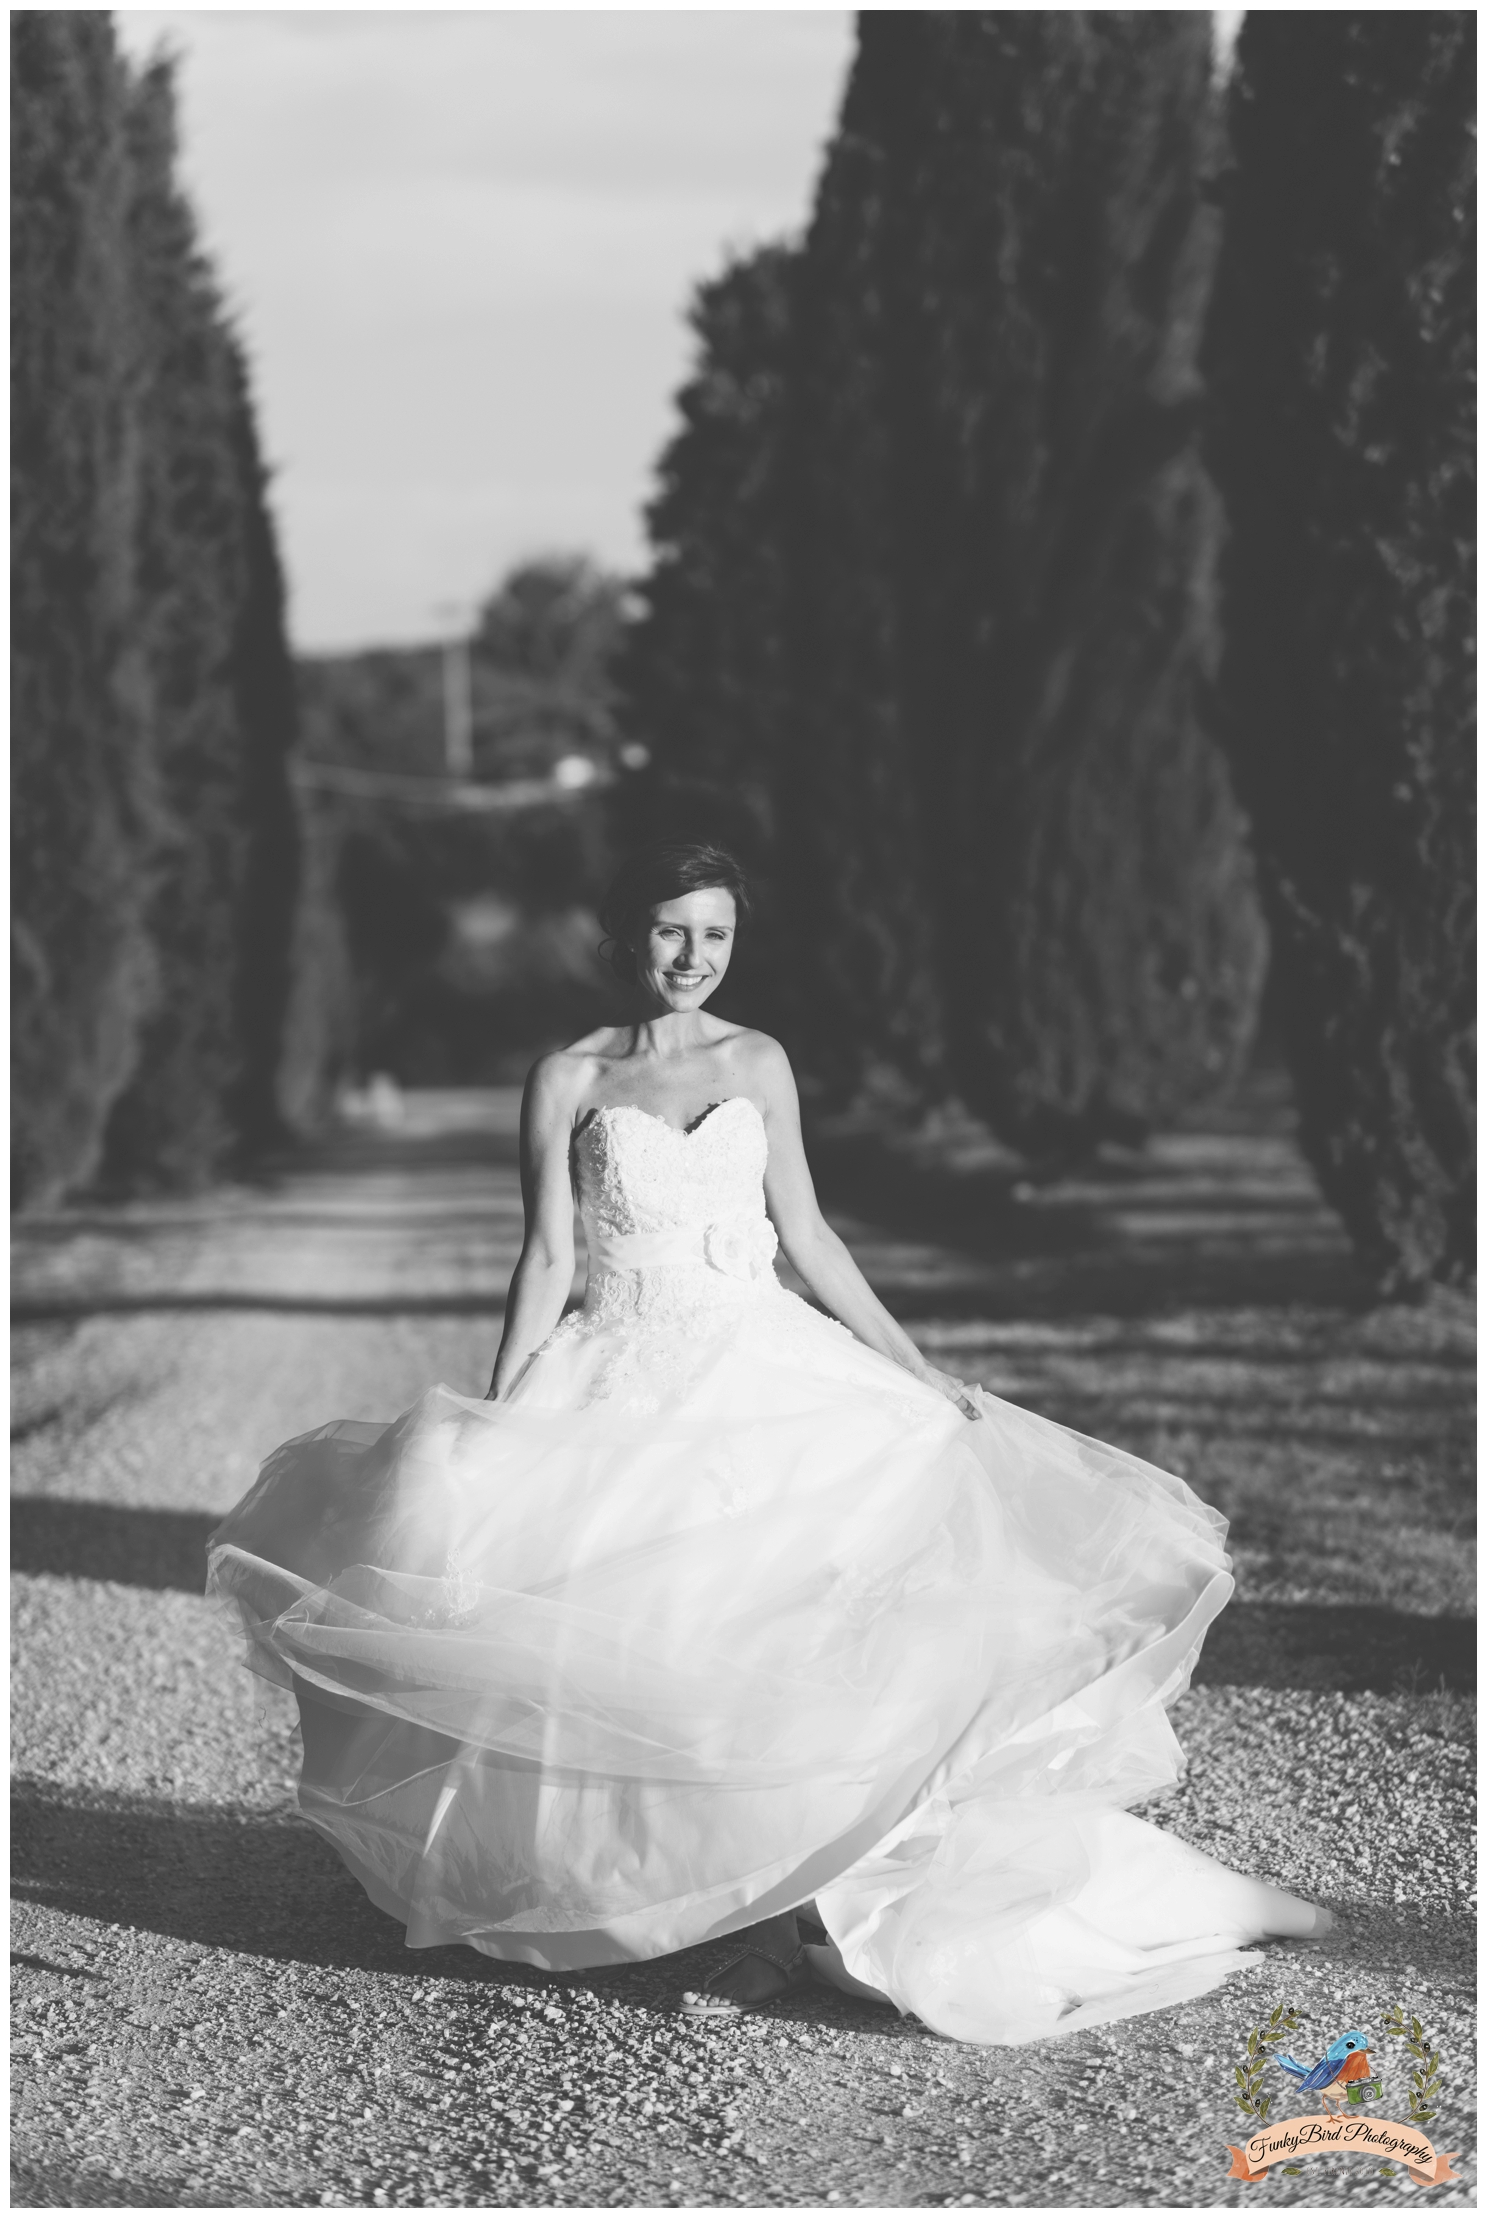 Wedding_Photographer_Tuscany_Italy_0035.jpg